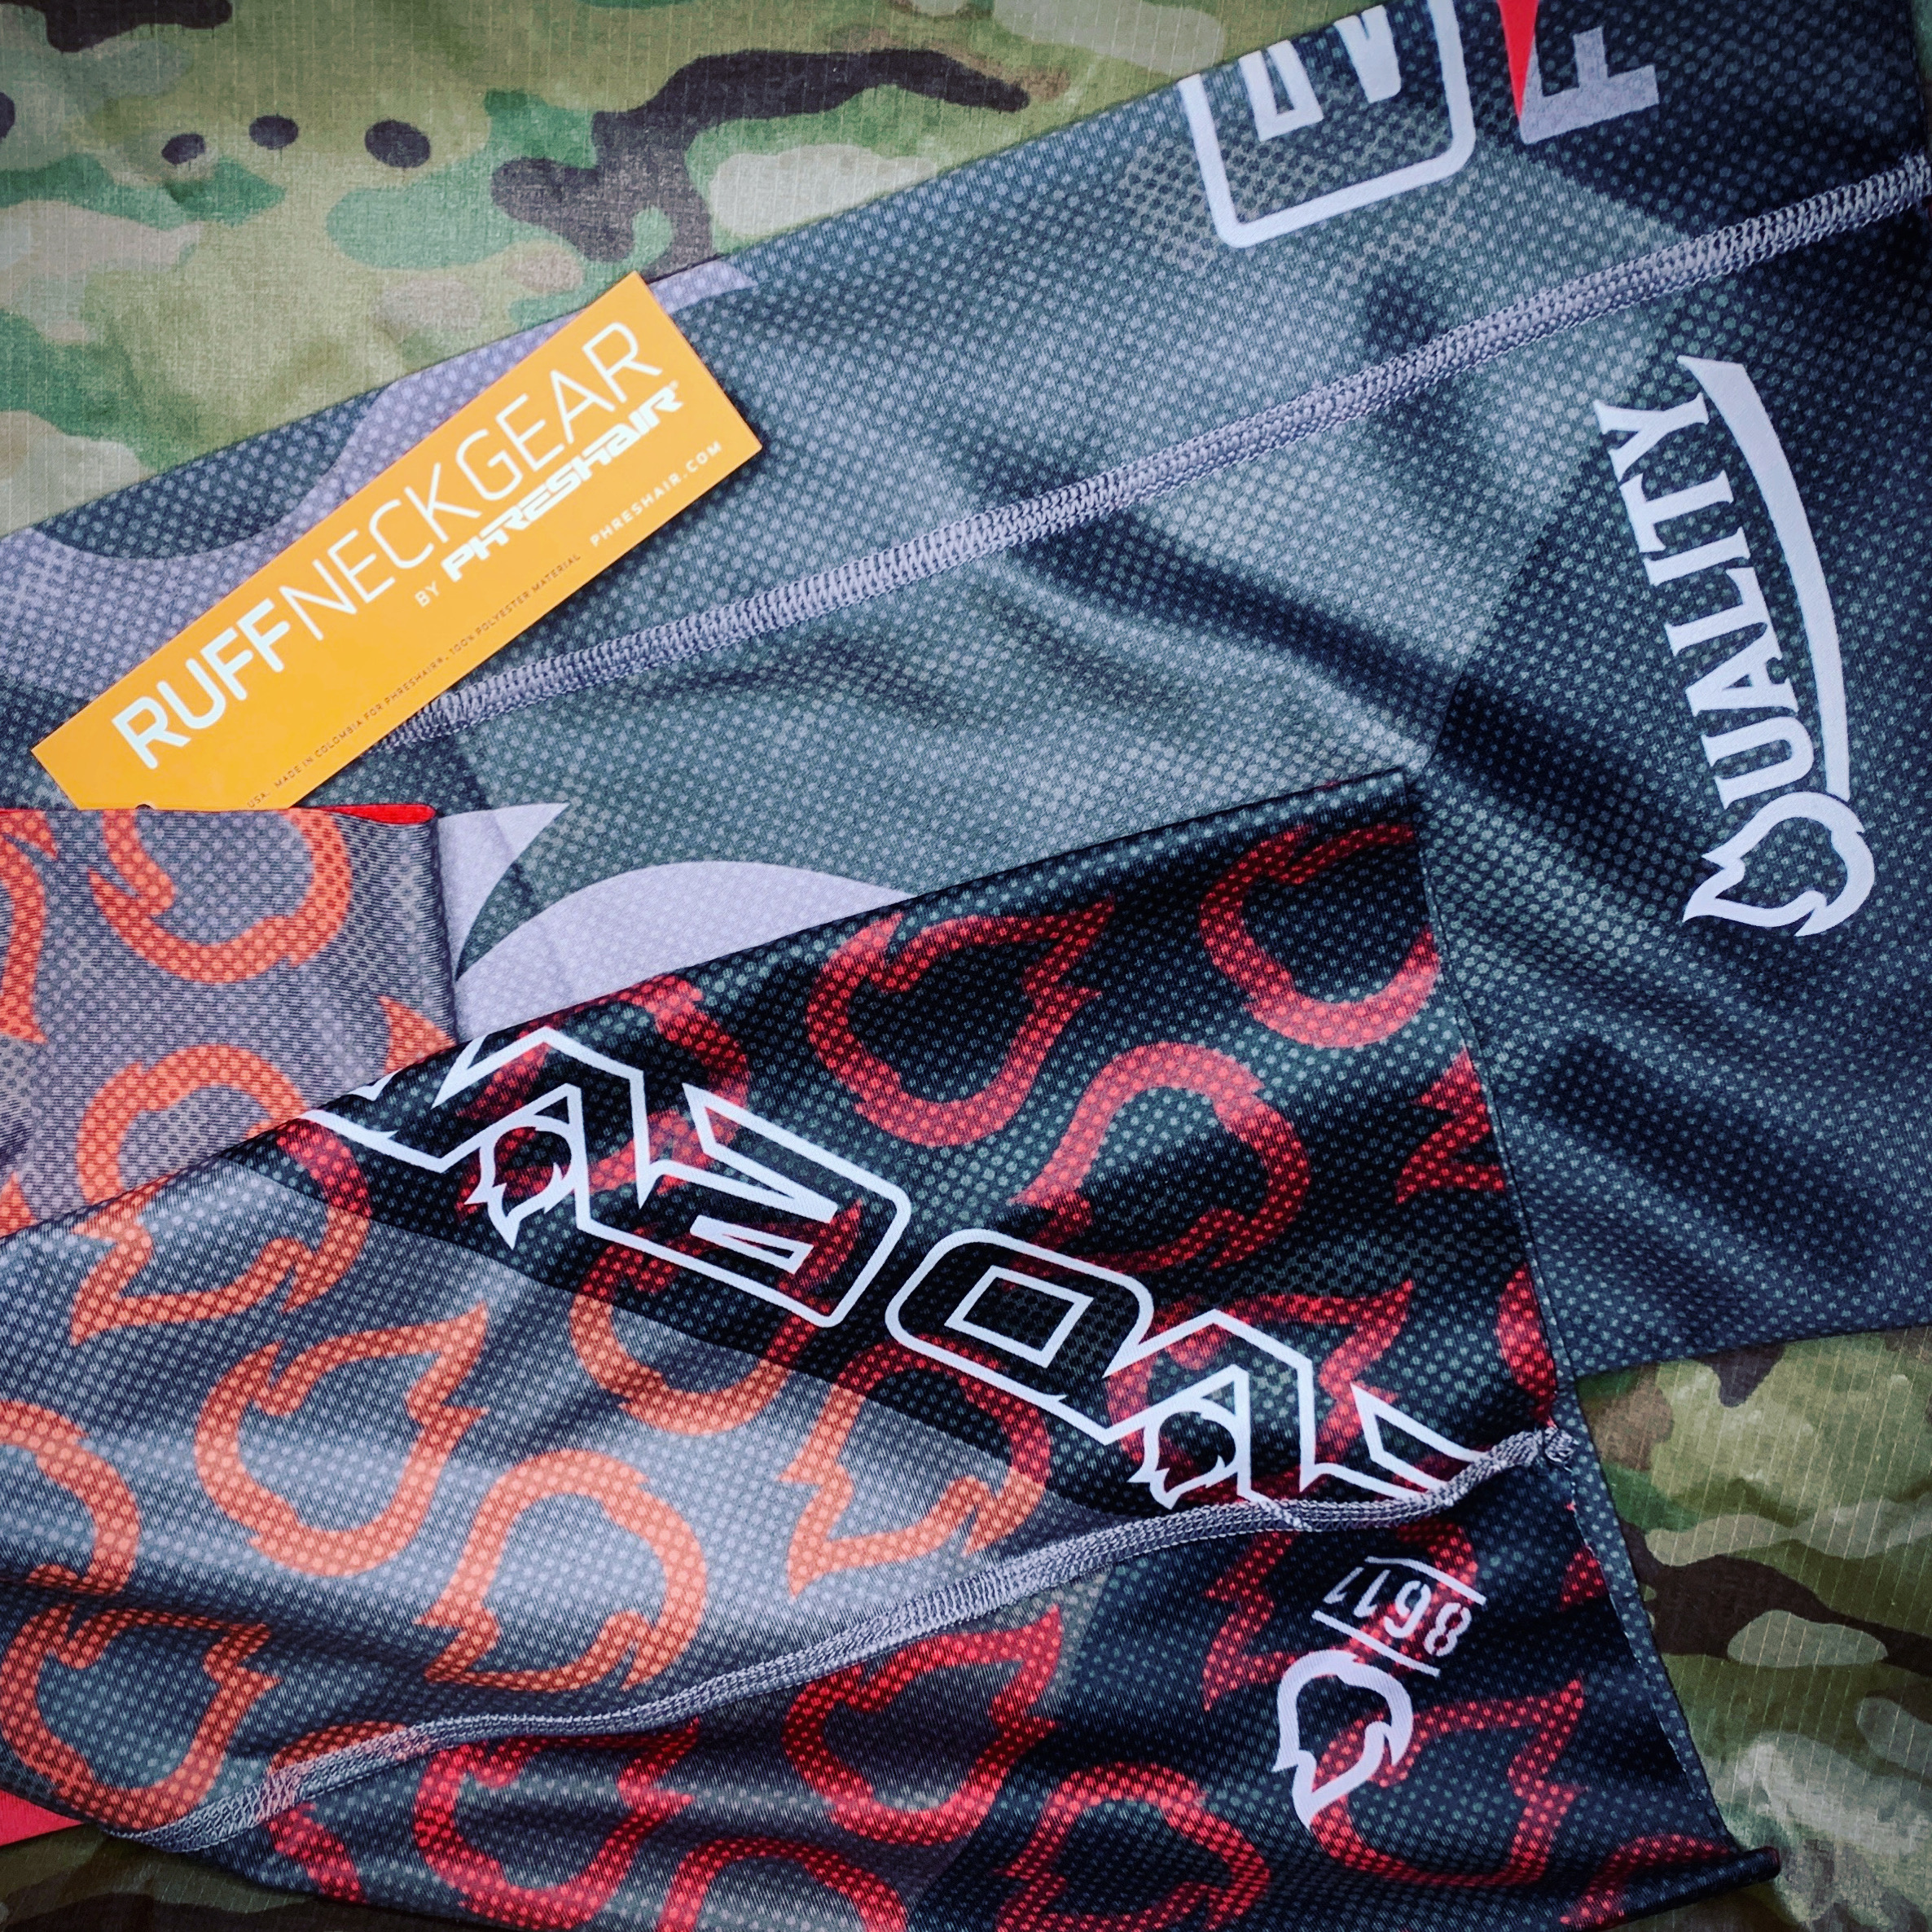 Firebird EVO Soft-thick cold weather gaters